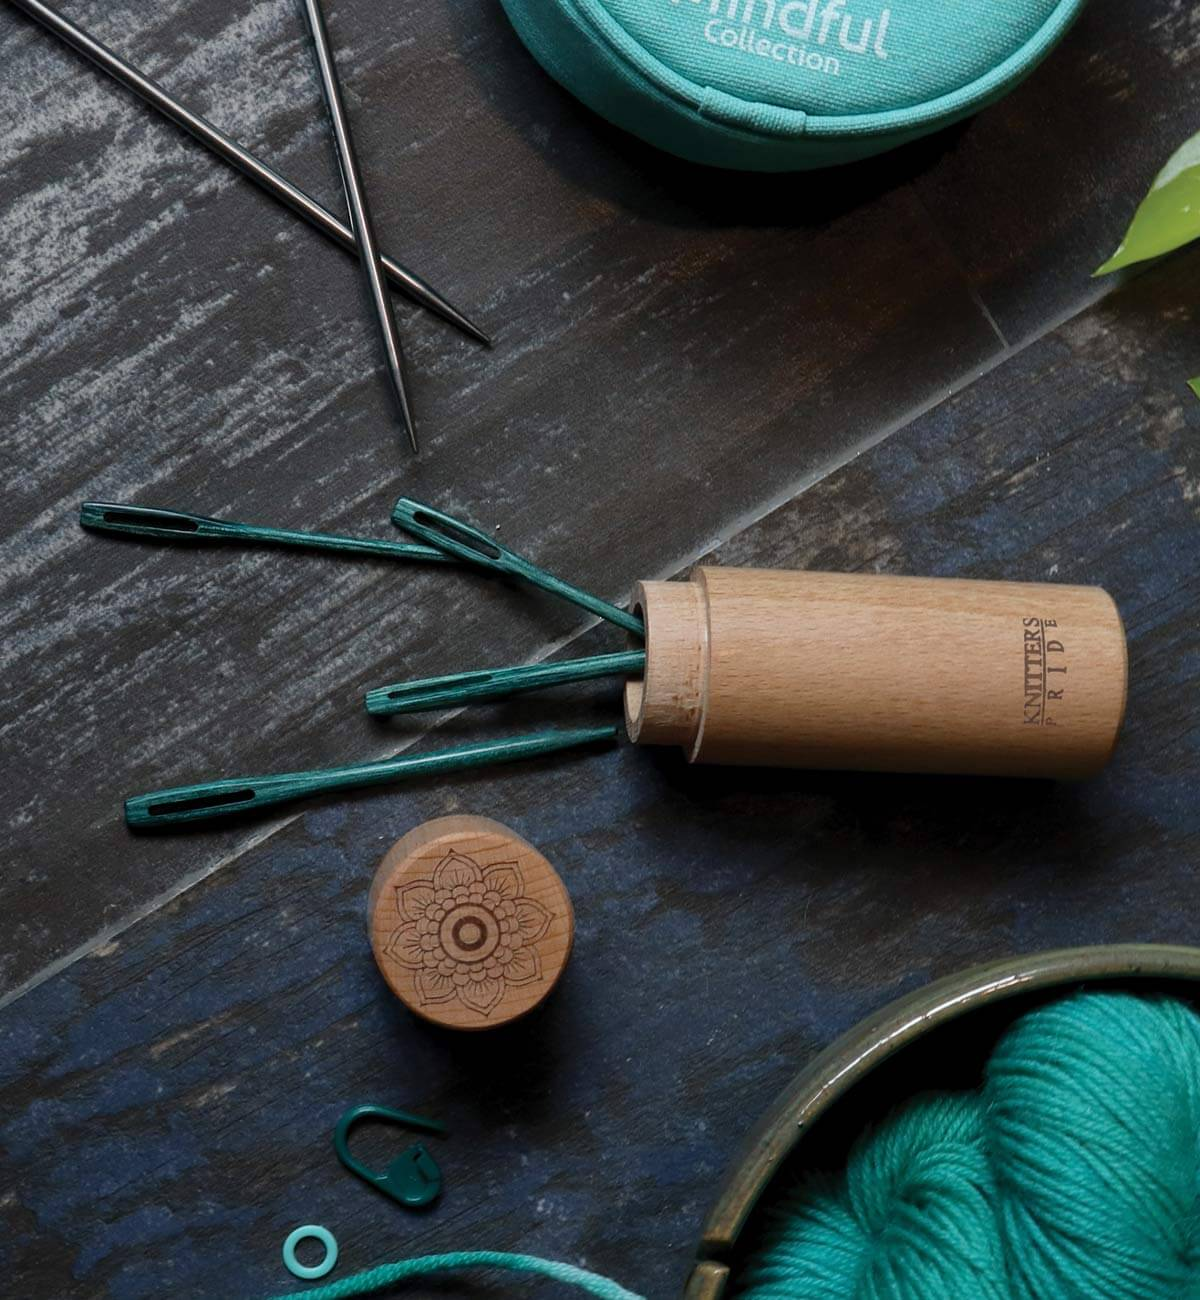 Mindful Collection Teal Wooden Darning Needles